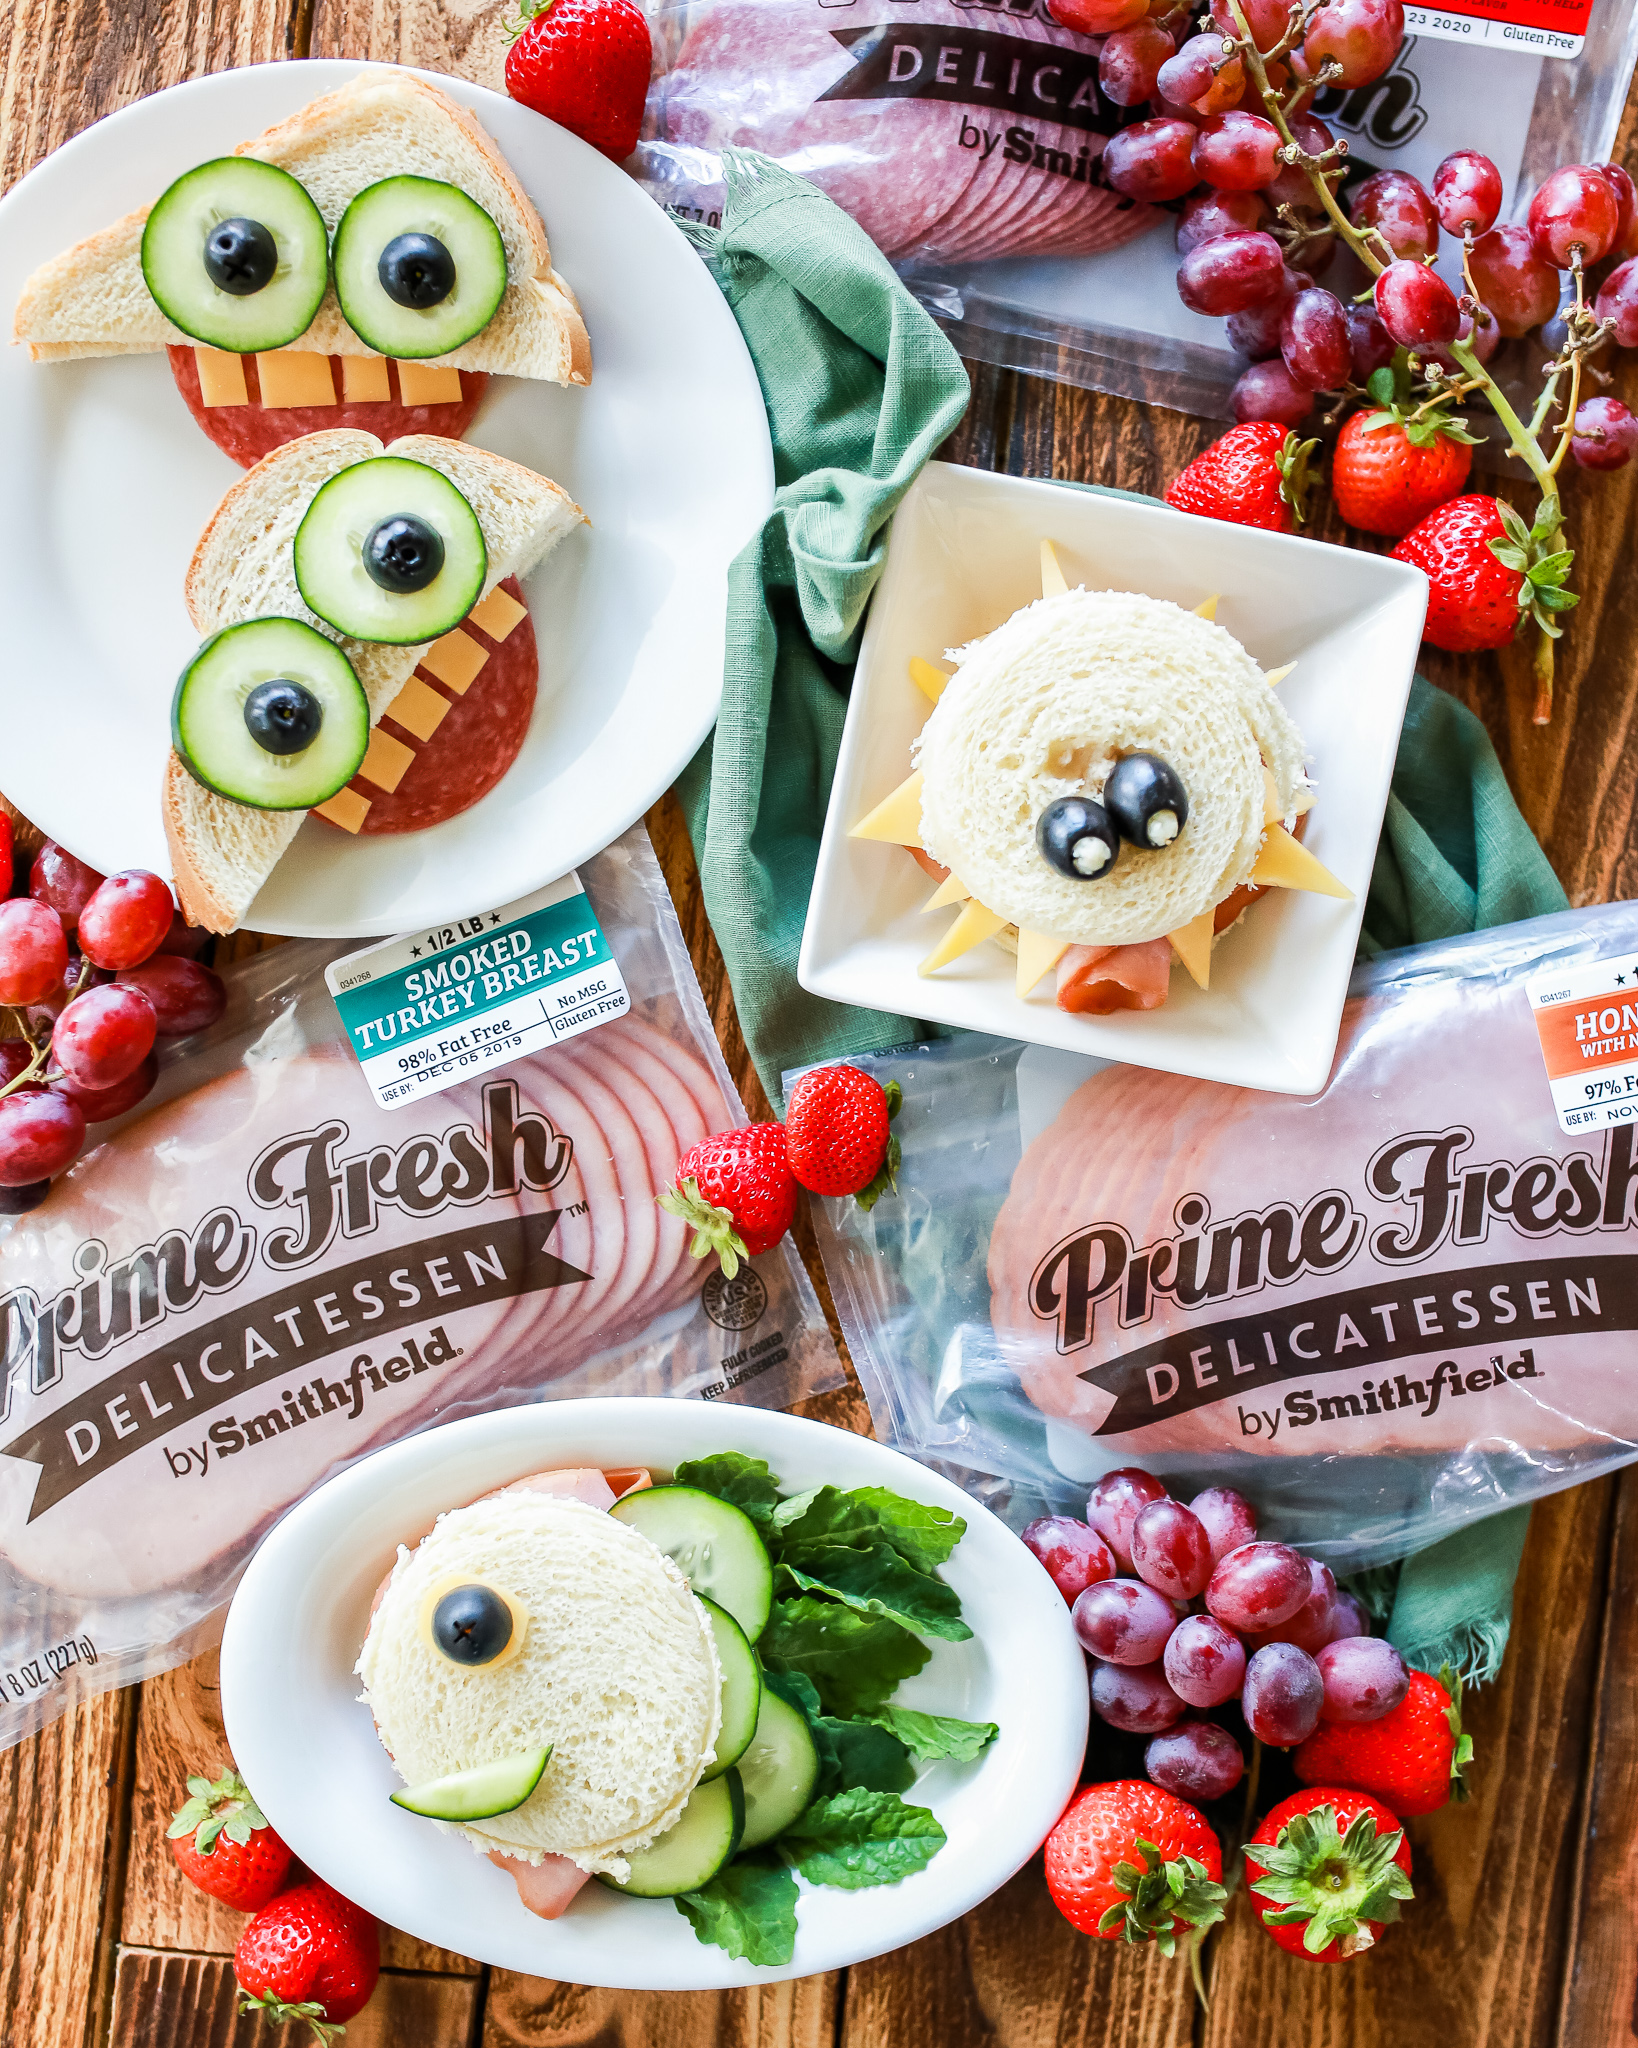 Sometimes it's hard making lunchtime exciting for your kids. Here are fun ideas to help make opening their lunch box your child's favorite part of the day.